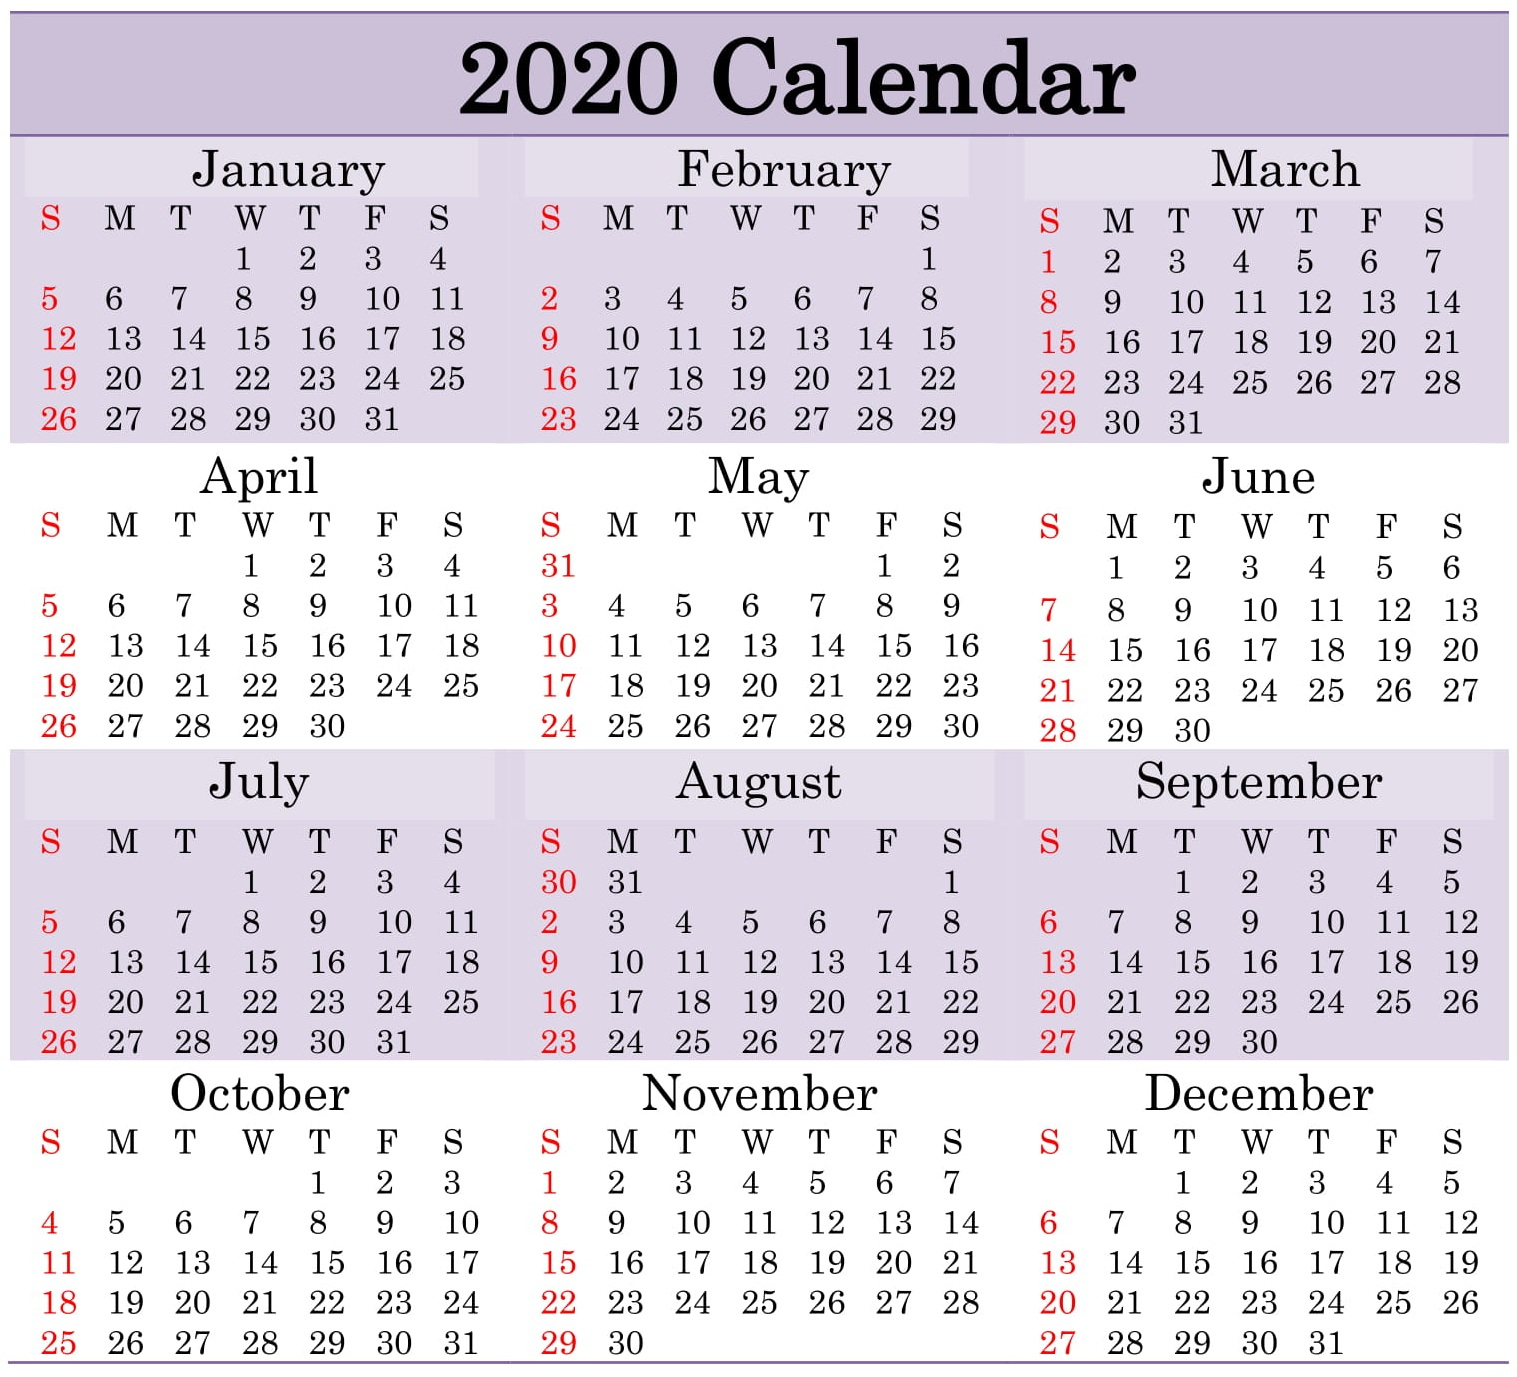 Printable 2020 Calendar Word Document  Latest Printable regarding Julian 2020 Calendar